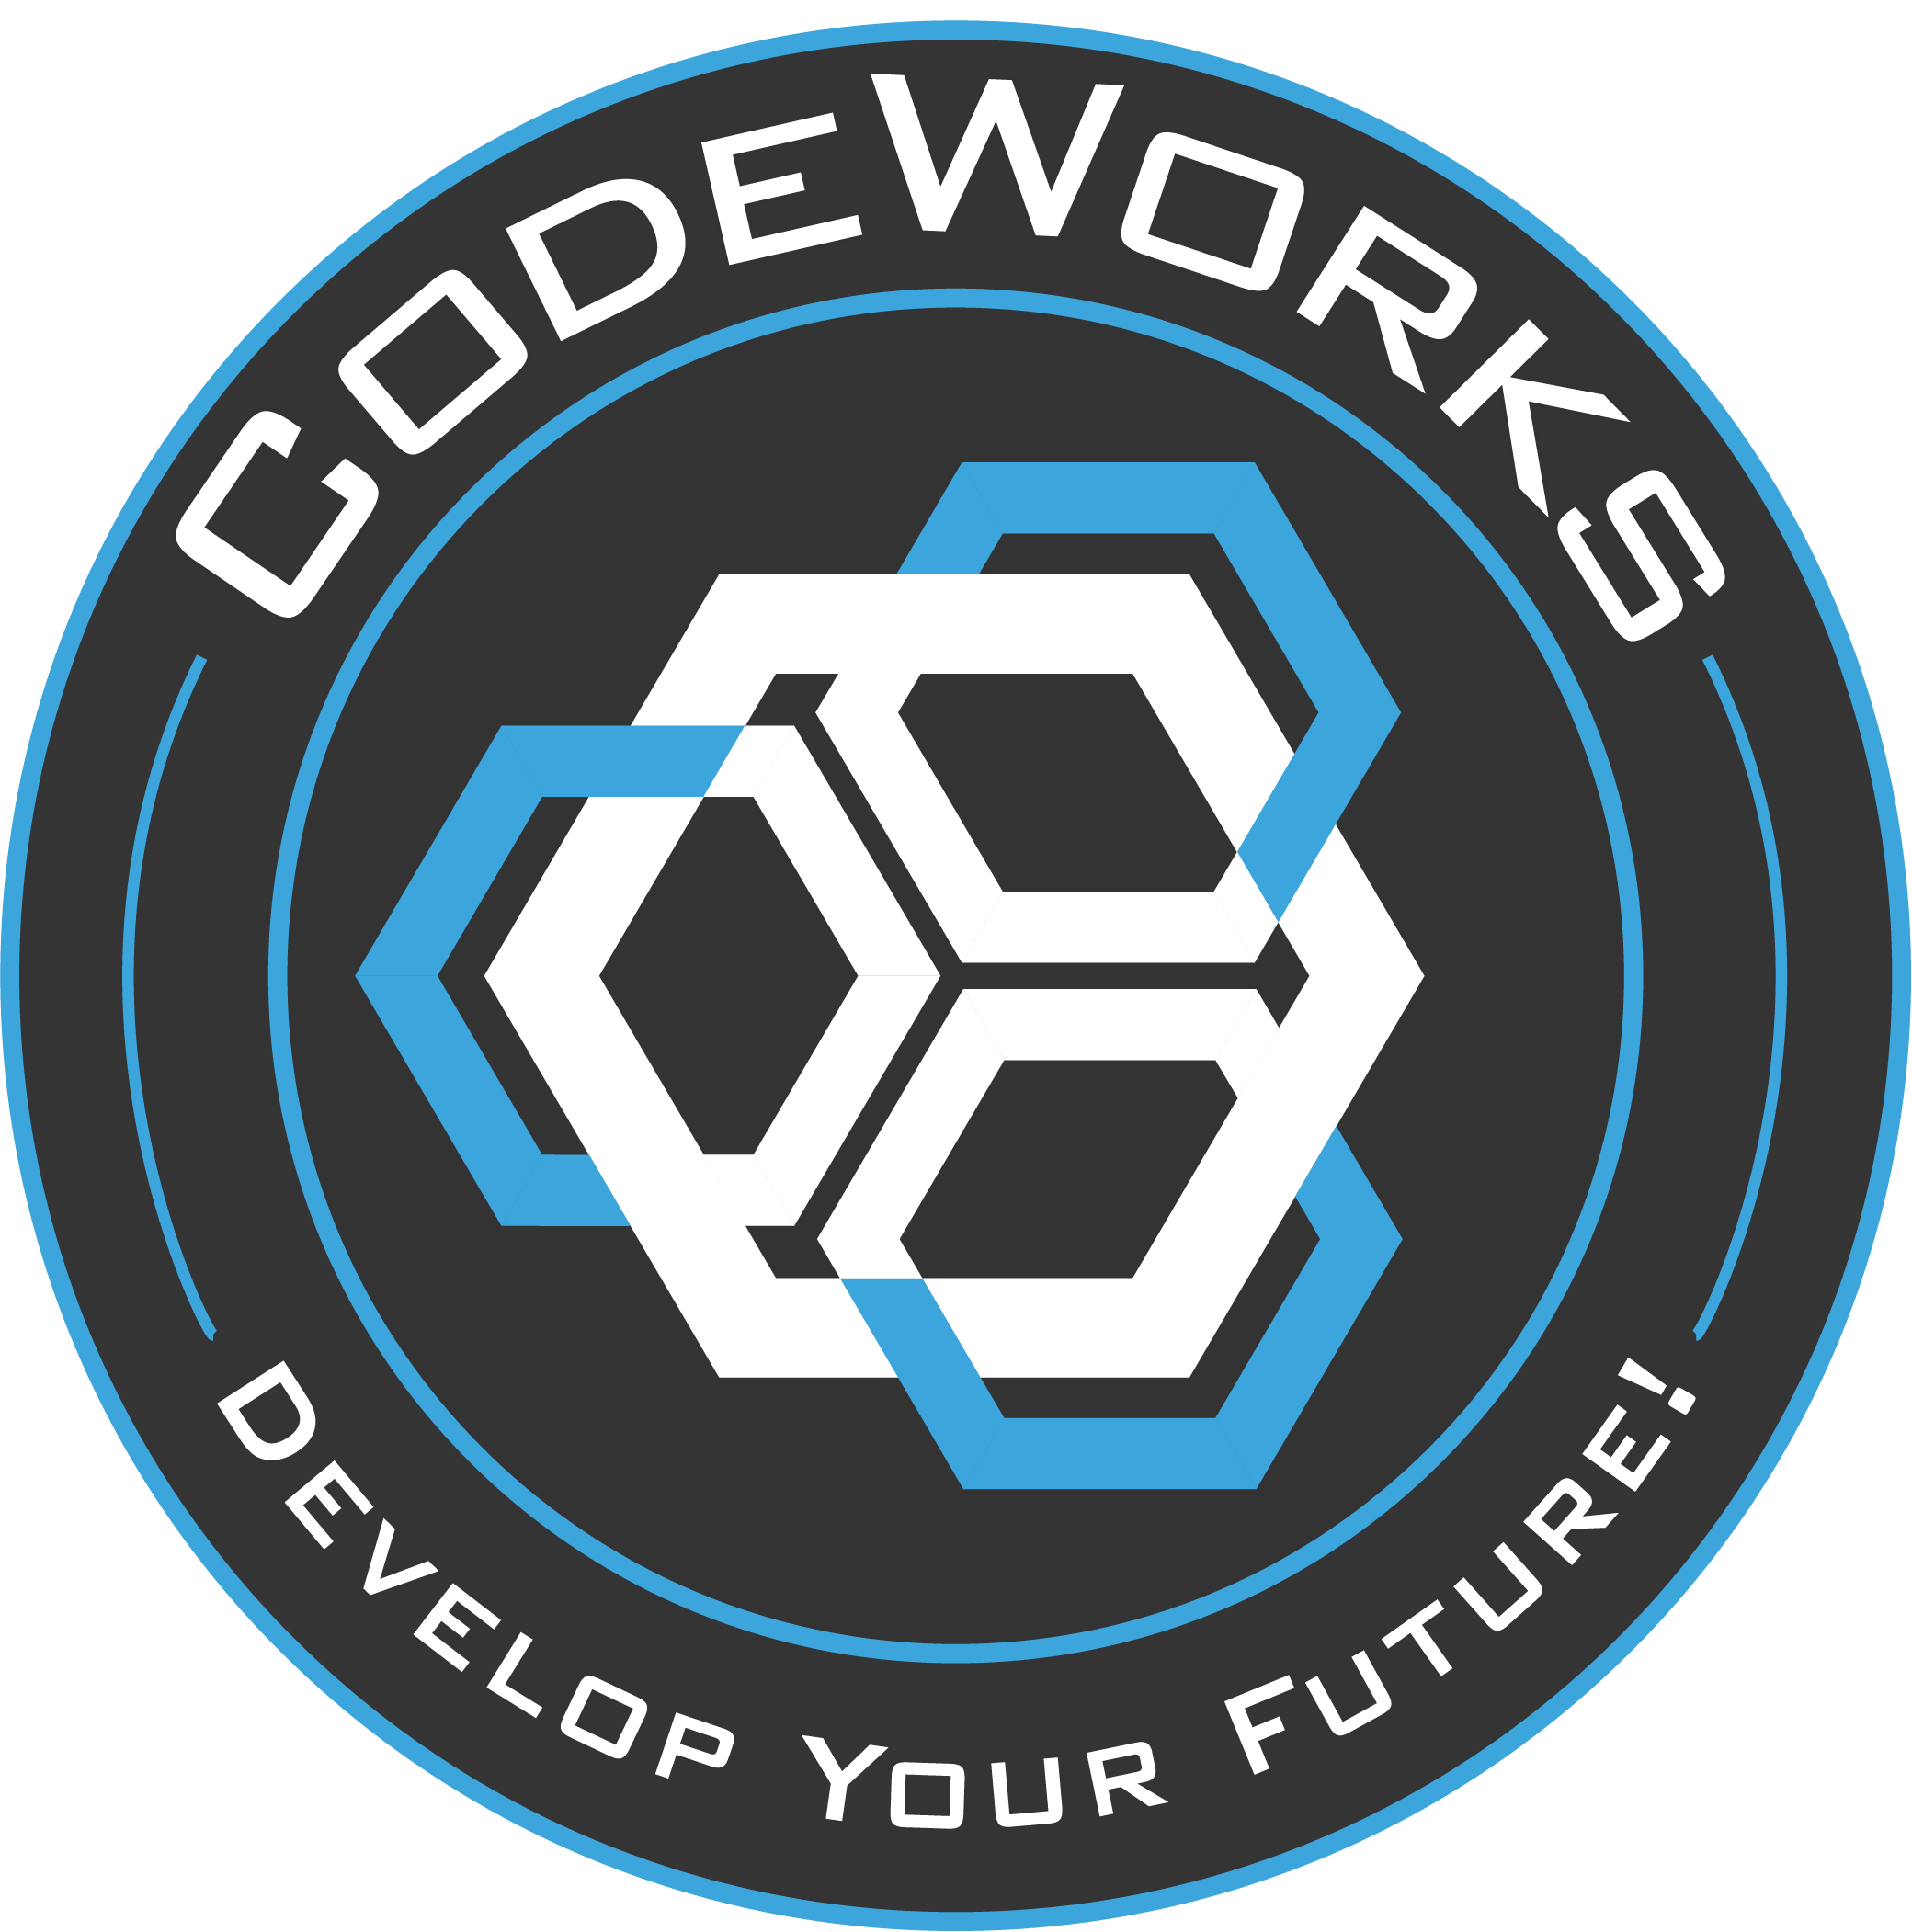 CodeWorks Develop Your Future